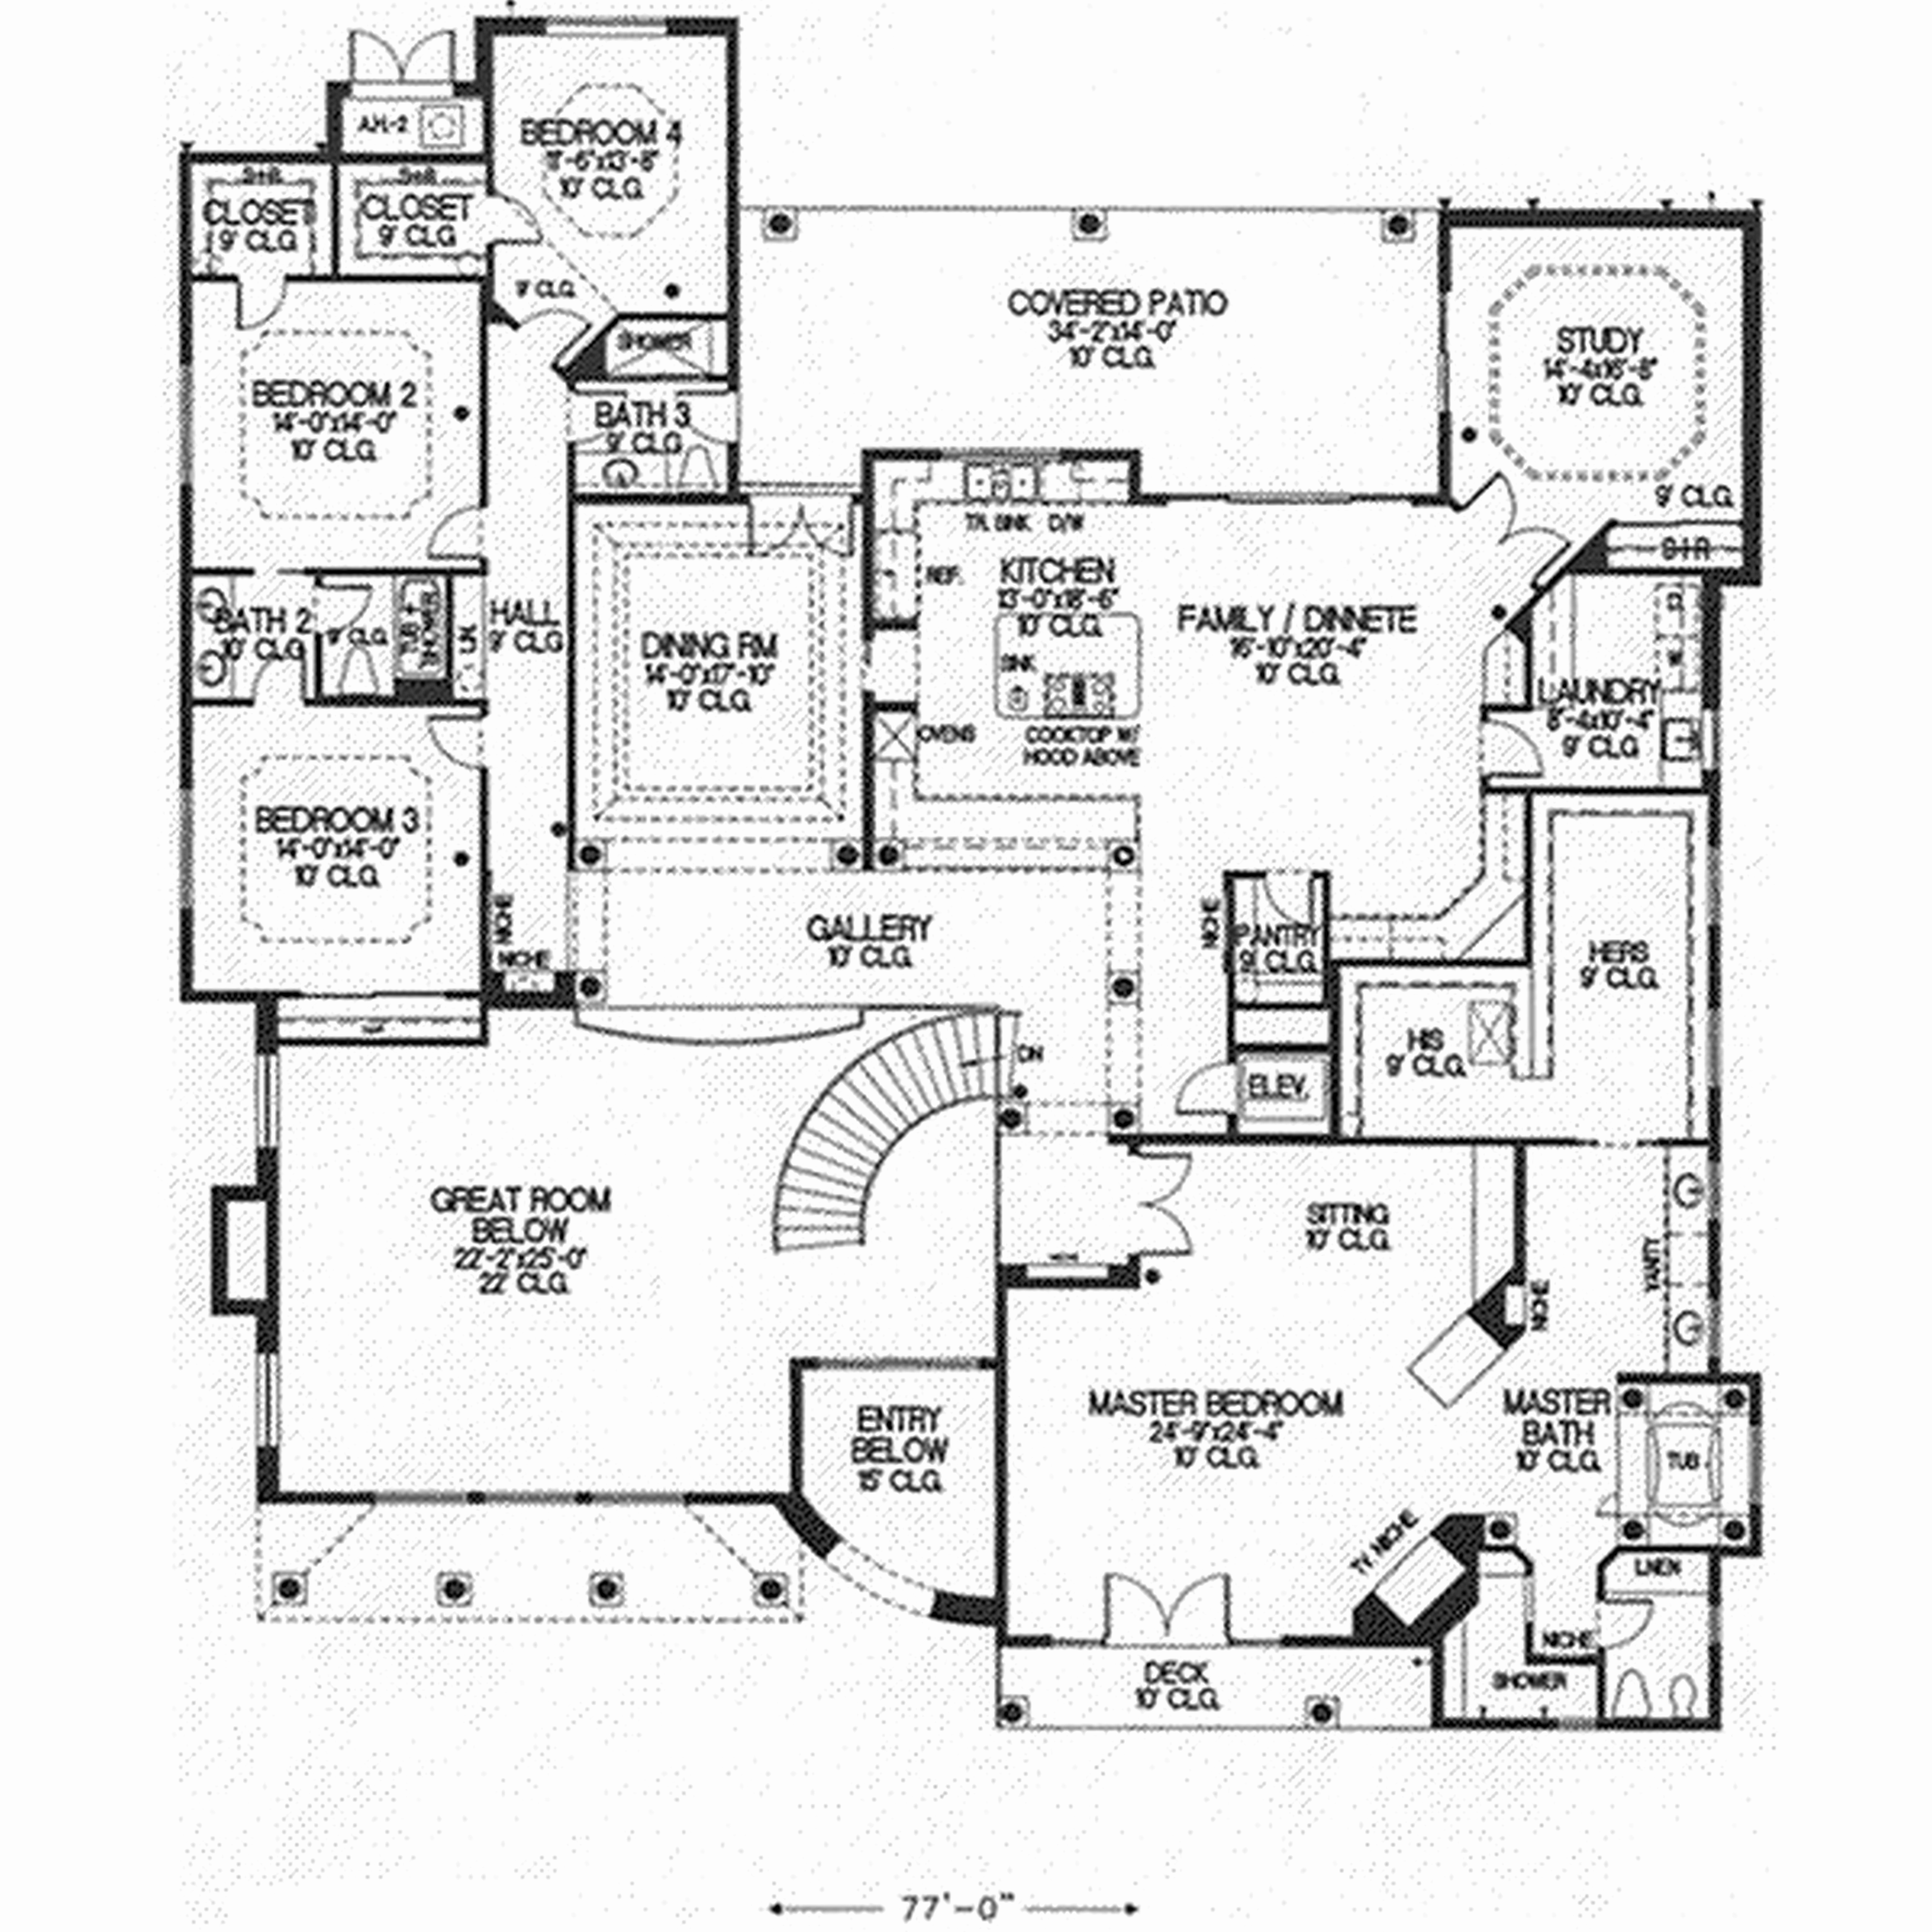 House Site Plan Drawing At GetDrawings.com